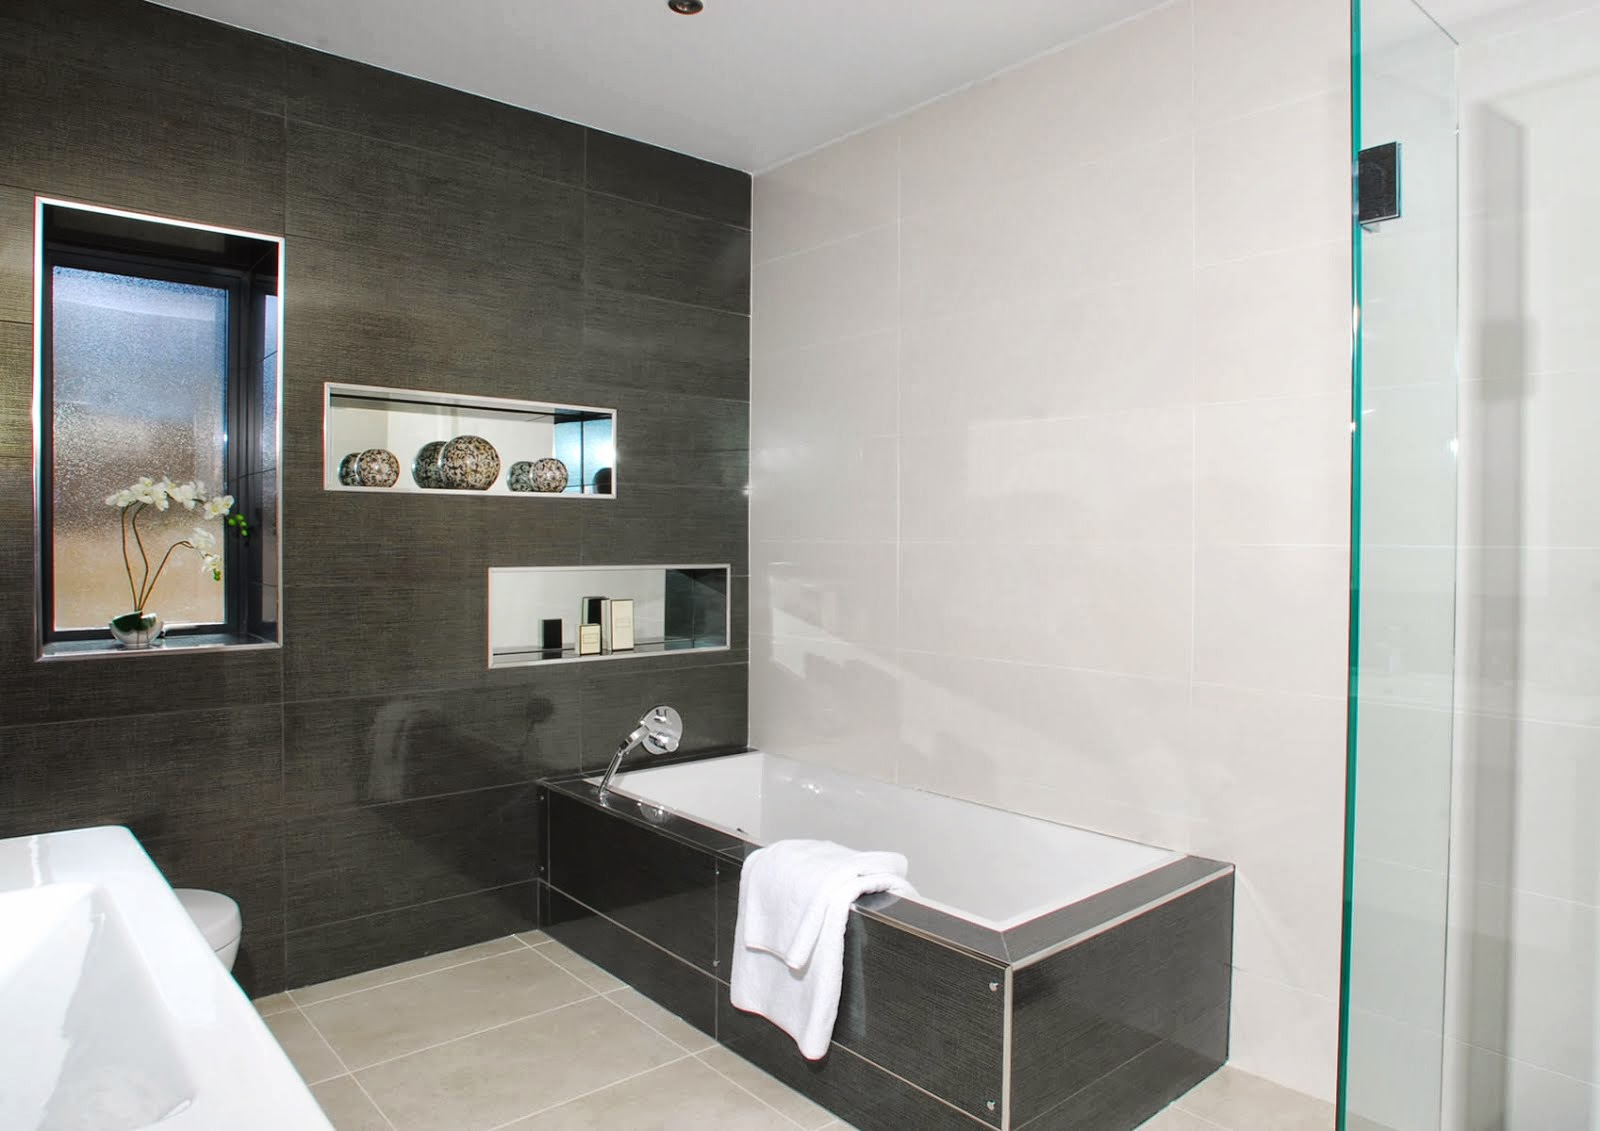 Bathroom design ideas uk for Ideas for bathroom designs